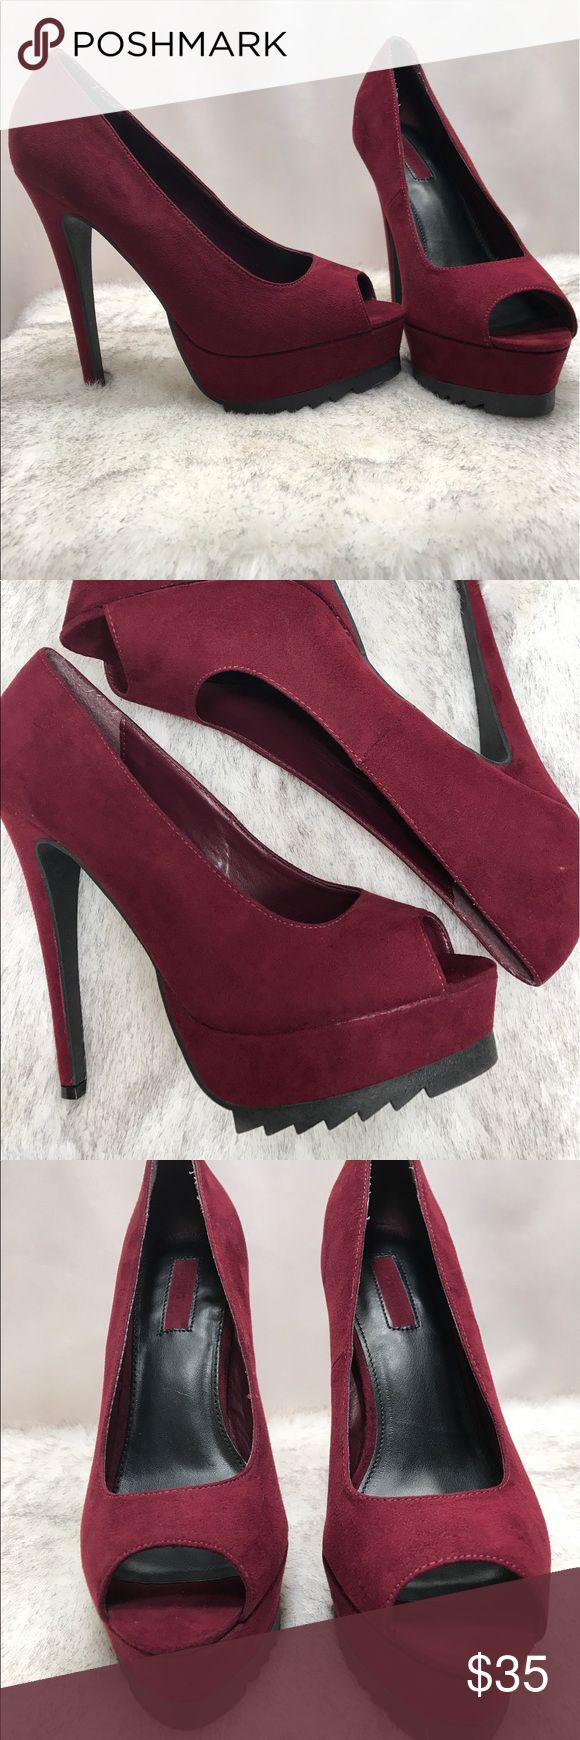 Maroon Pump Up High Heels Worn Once, soft feel, forever 21 brand, very cute for everyday look. Can't wear them now cause I'm pregnant ☺️ Forever 21 Shoes Heels